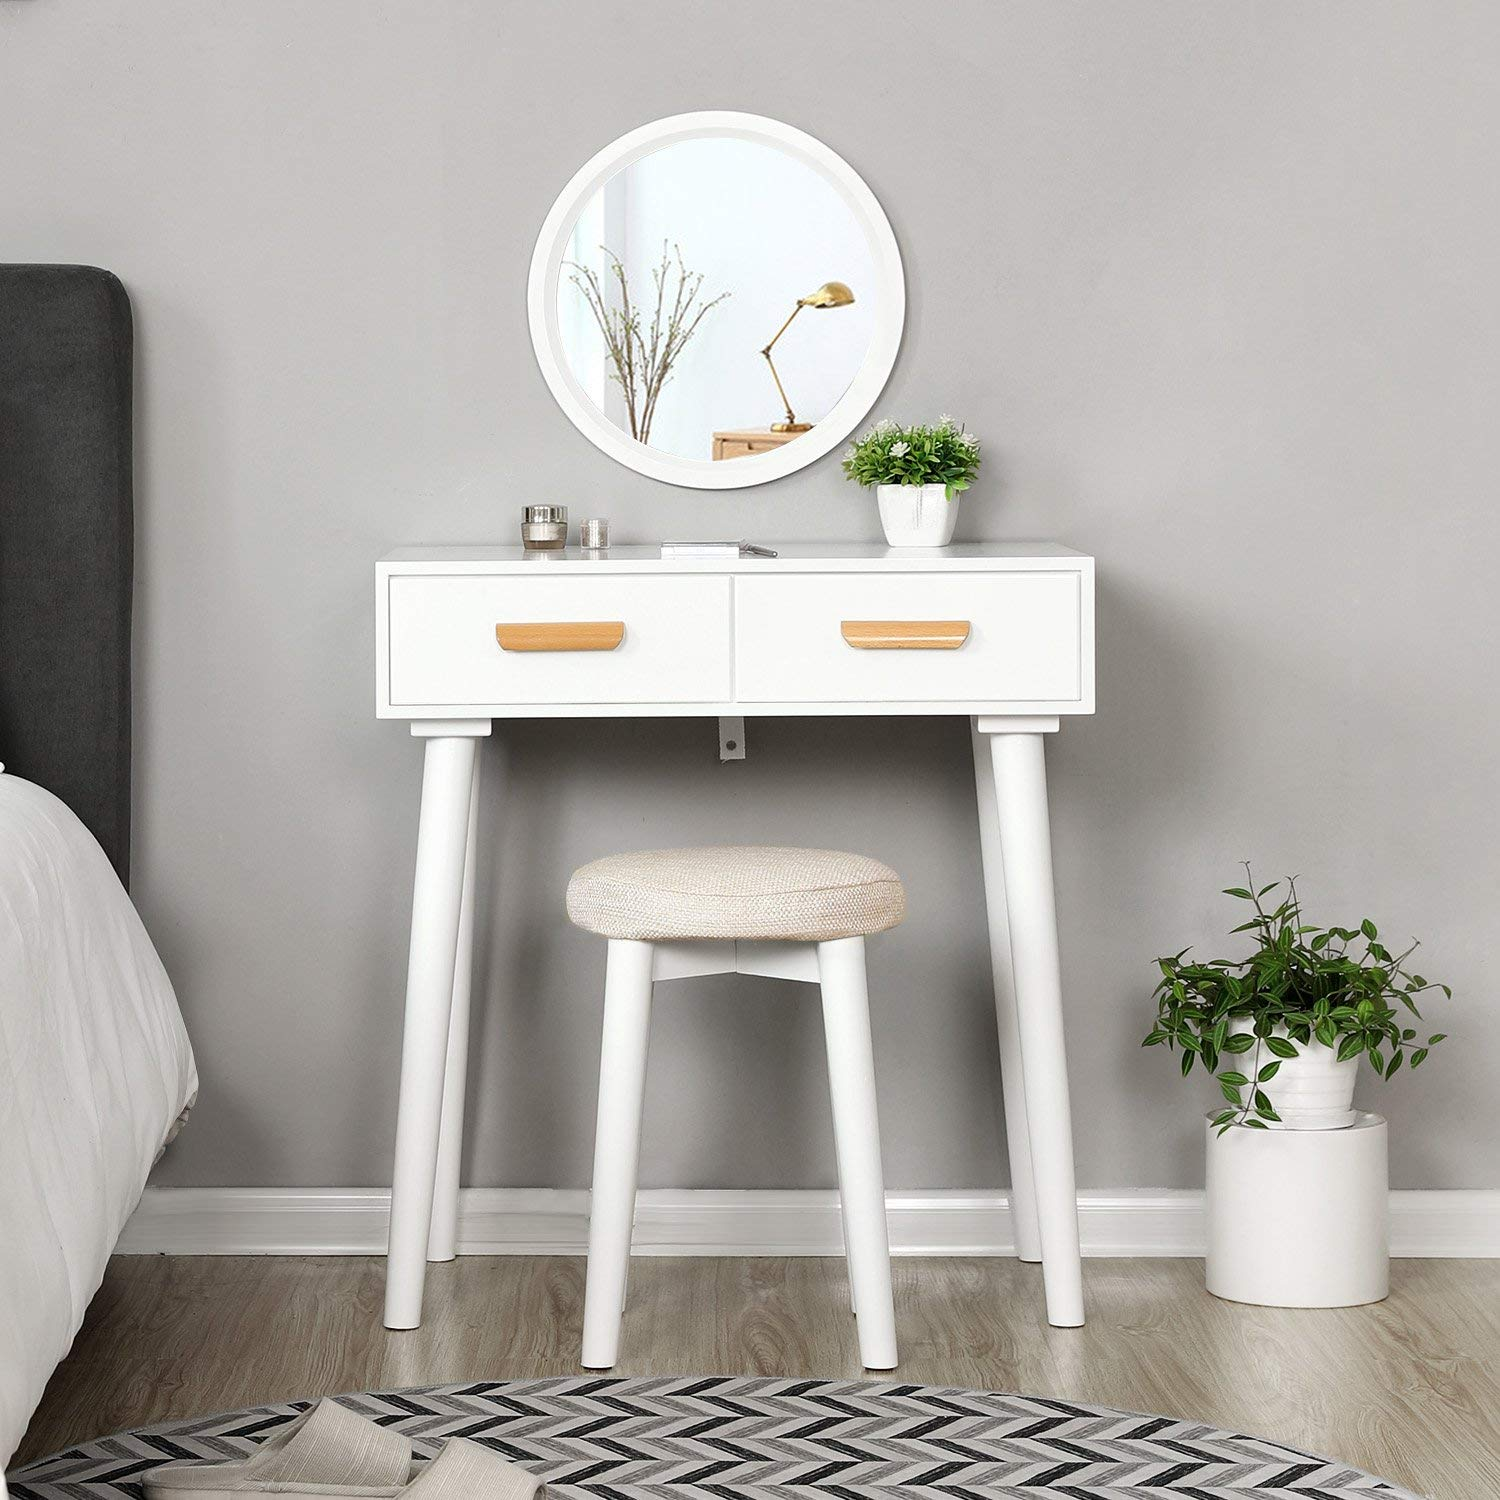 What are the maintenance methods for custom bedside tables